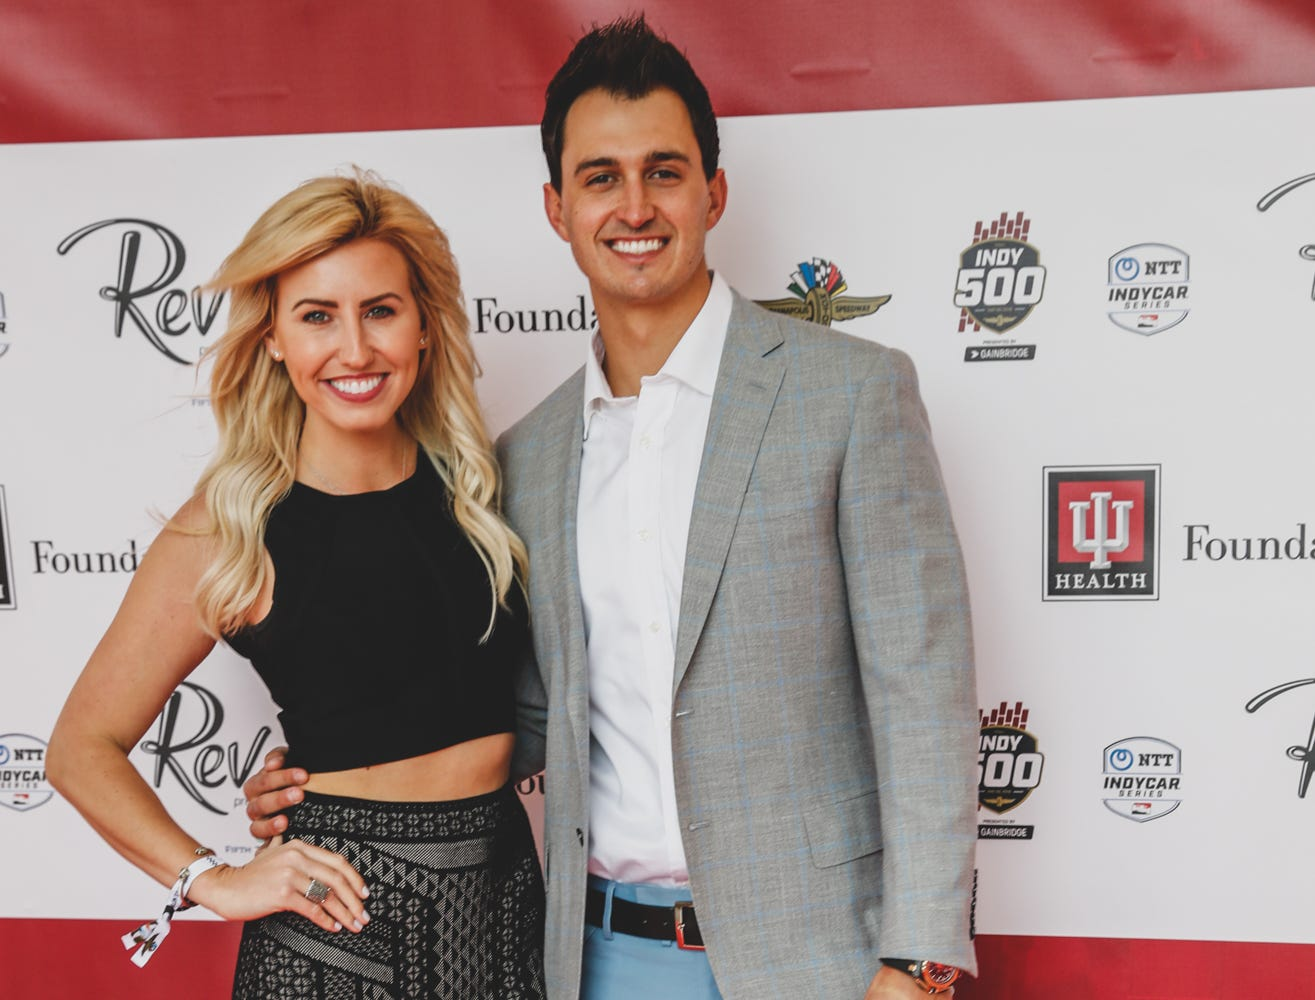 Racing drivers Graham Rahal and his wife Courtney Force walk the red carpet at the Rev Indy fundraiser, held at the Indianapolis Motor Speedway on Saturday, May 4, 2019. Funds raised support the IU Health Foundation statewide and the IU Health Emergency Medical Center at IMS.